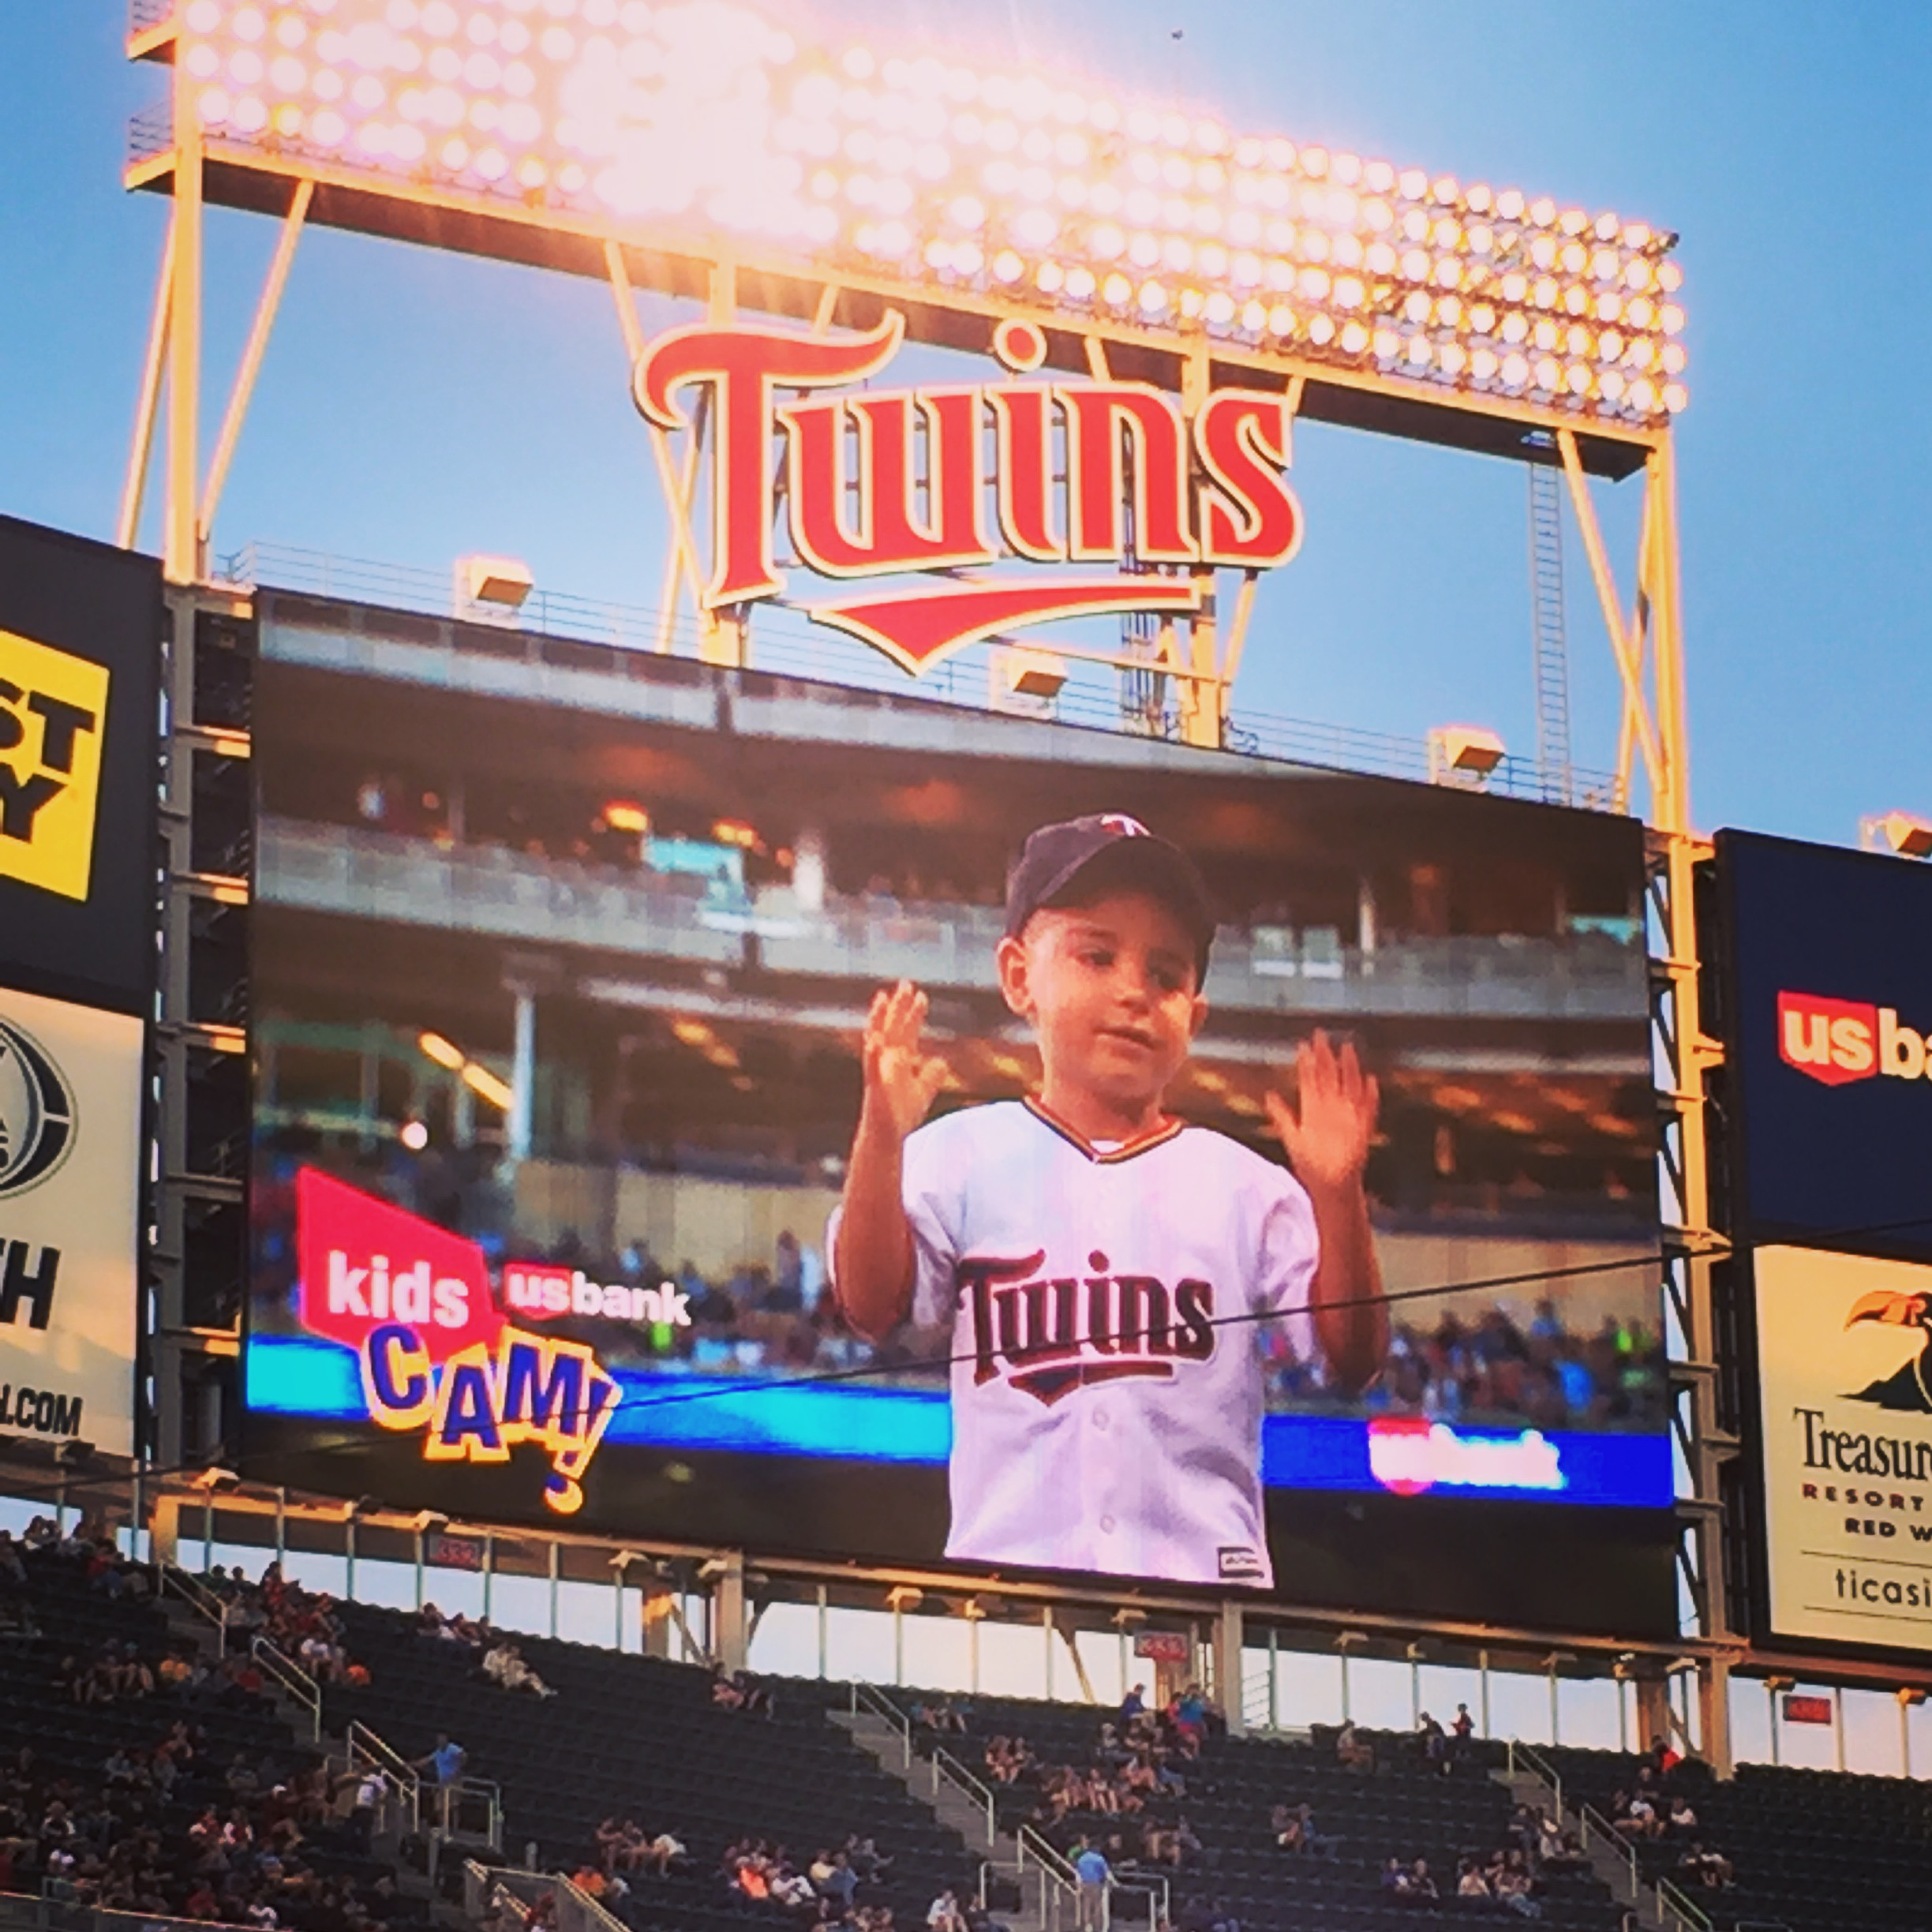 Big screen at the Twins game | June | Minneapolis, MN